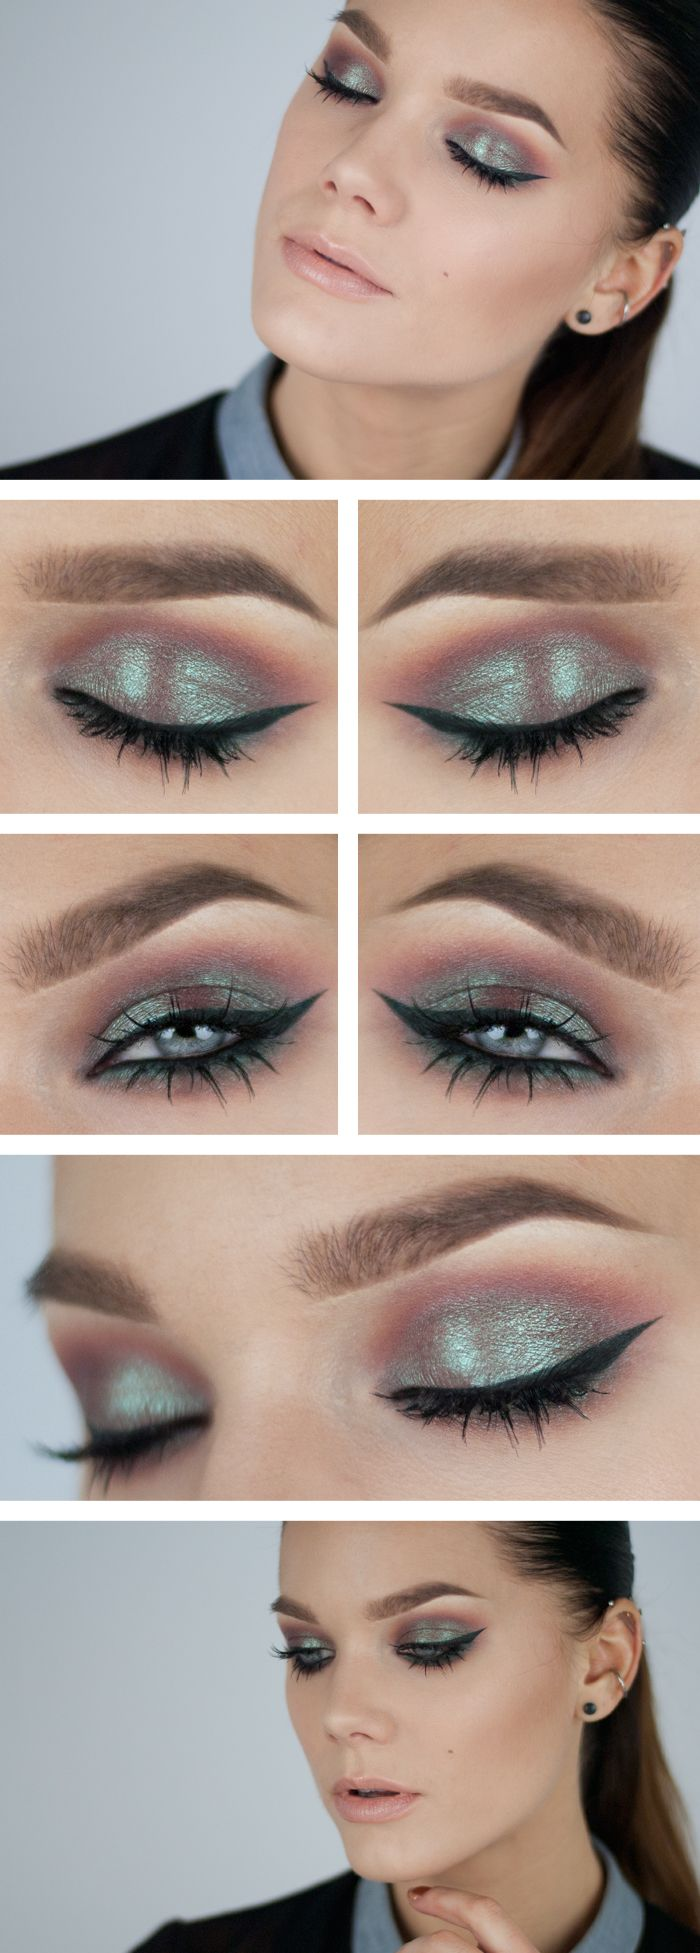 For more beauty and fashion go to http://www.pinterest.com/perfectcircle/beauty-lifestyle-fashion-3/